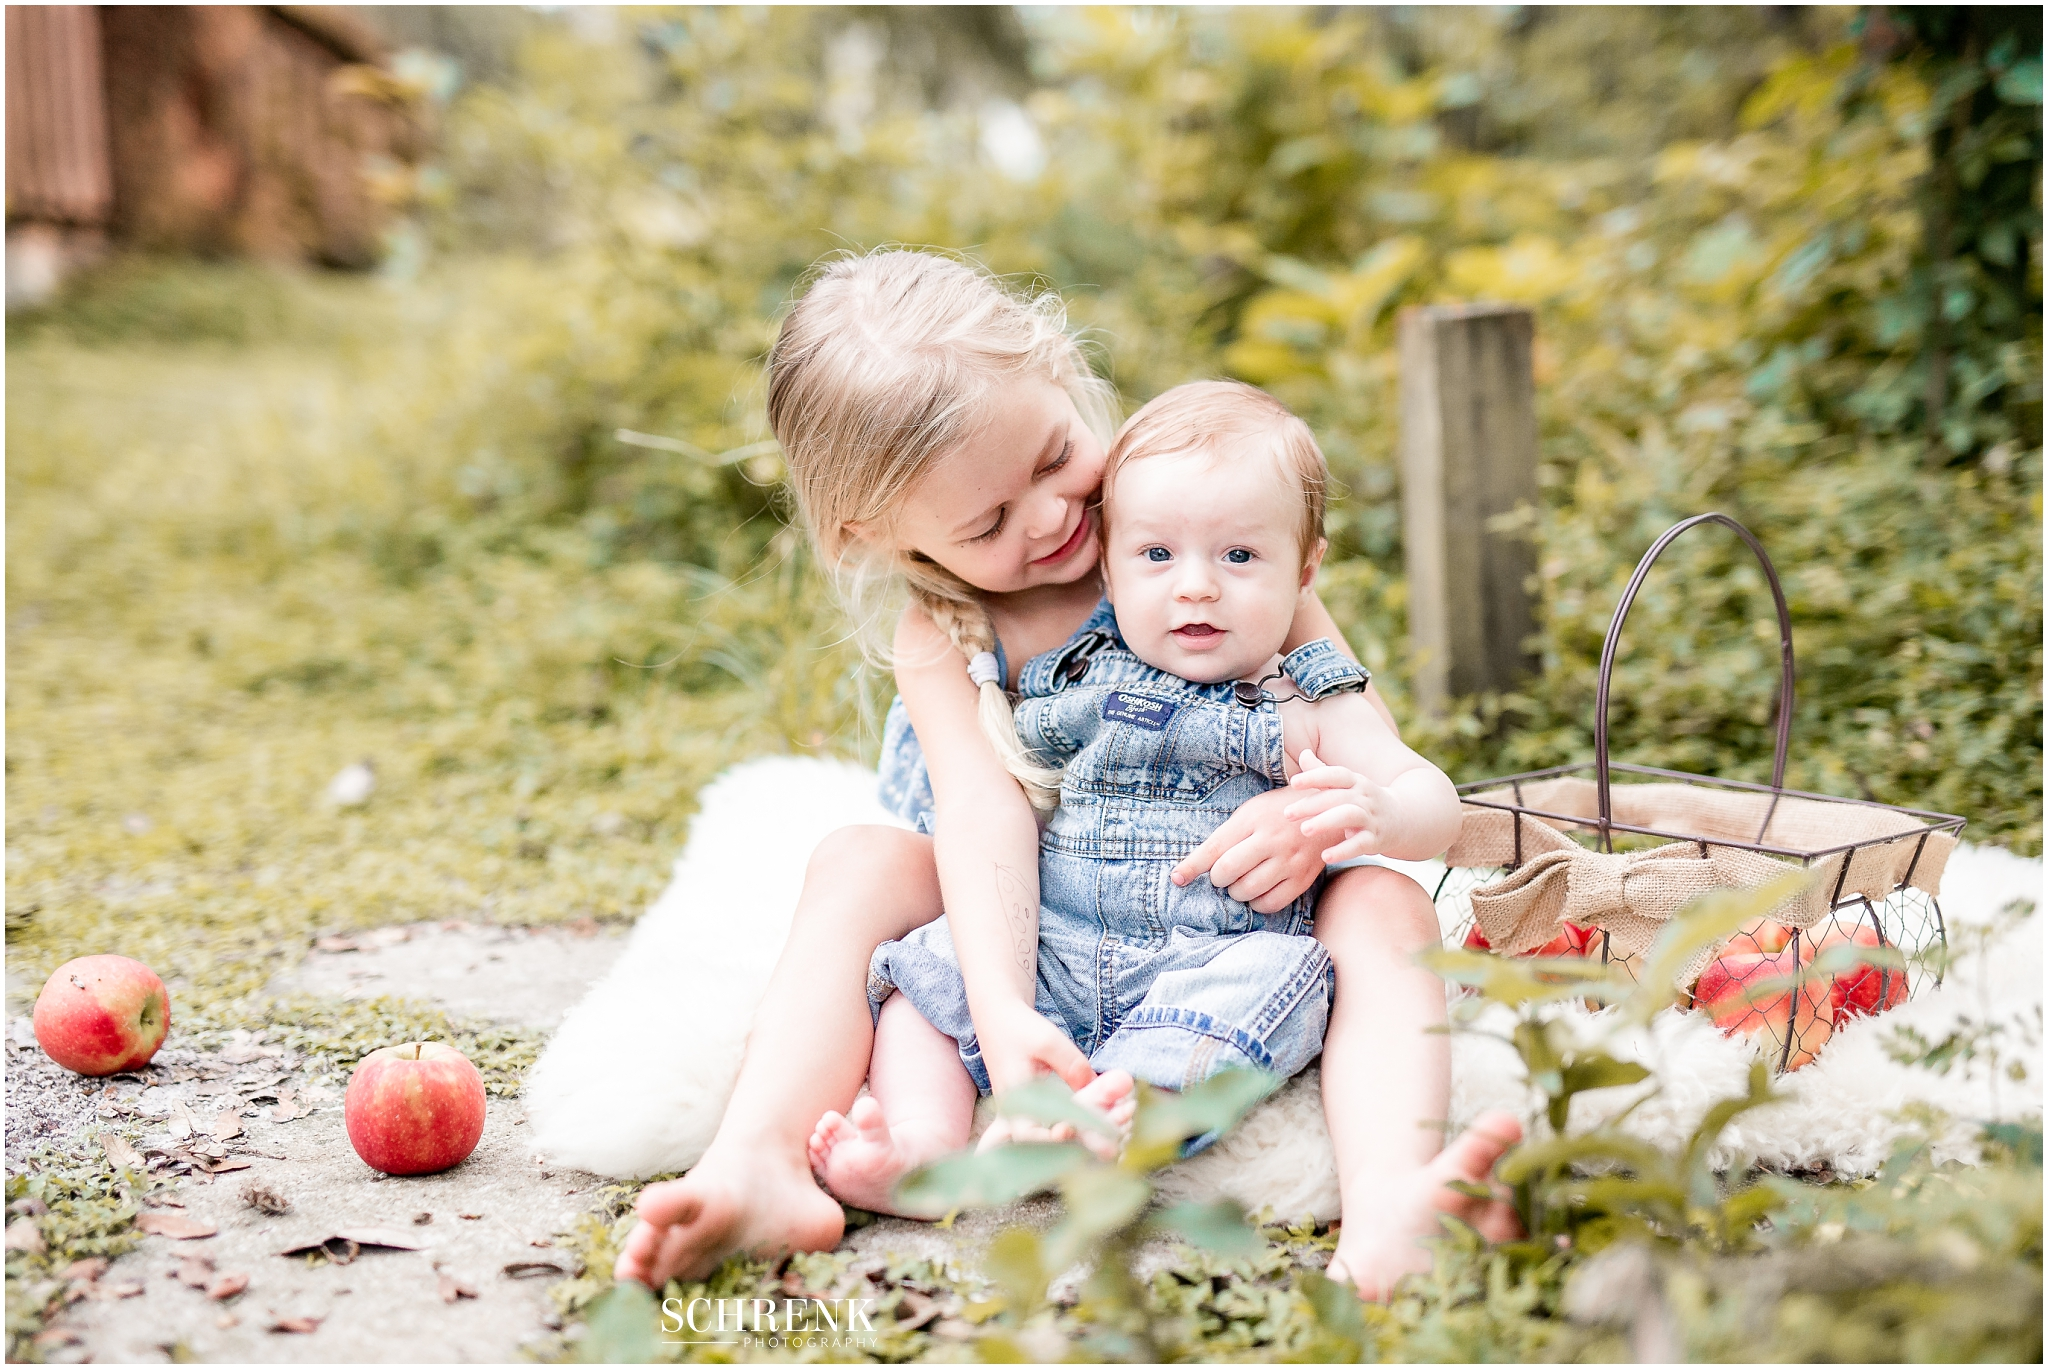 Schrenk Photography Ovievo, Orlando, and Winter Park Family and Newborn Photographer 40